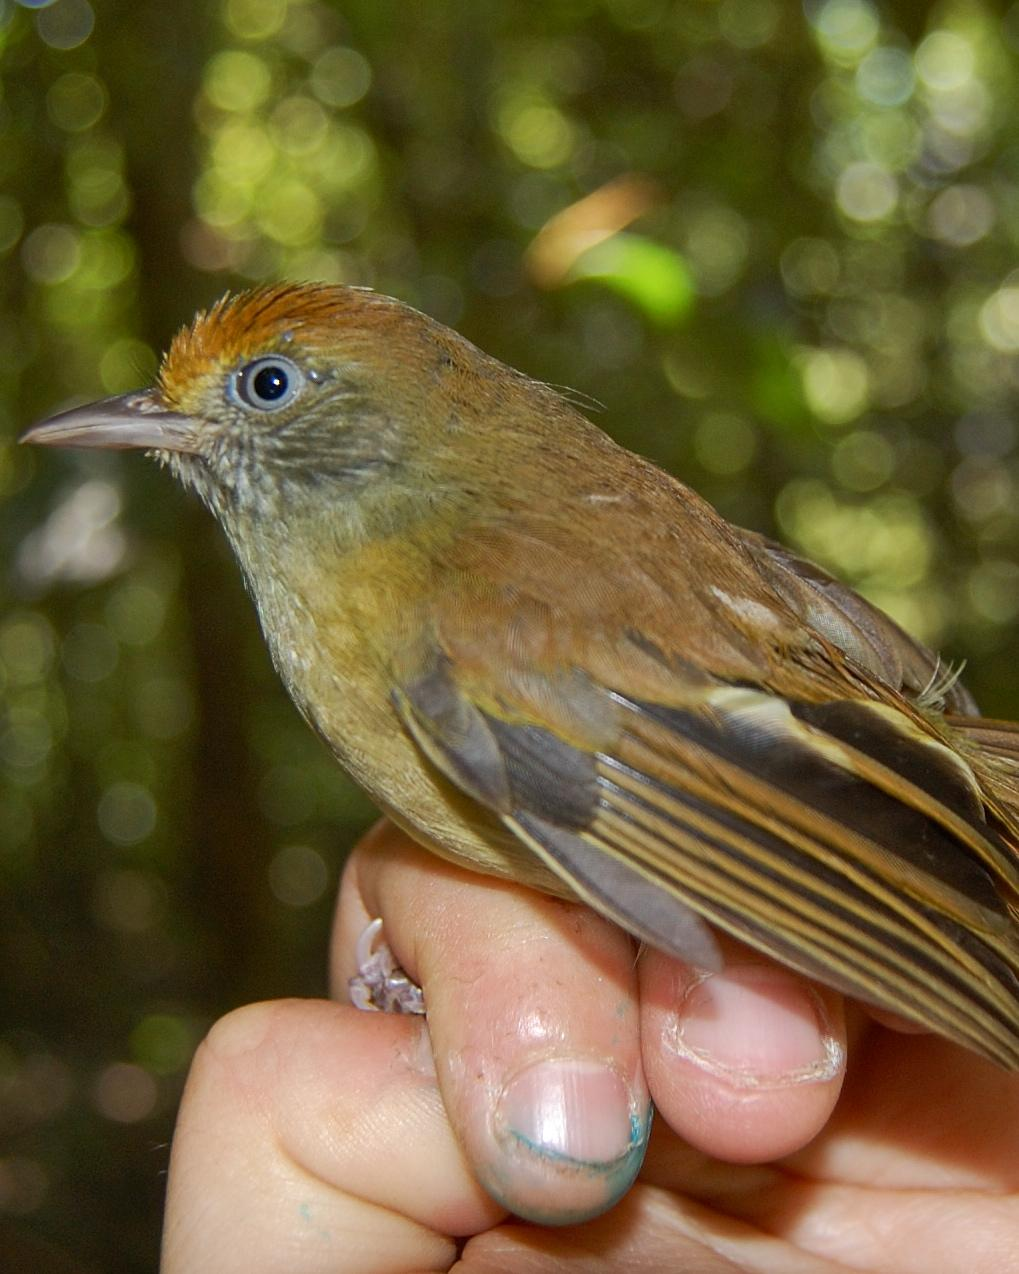 Tawny-crowned Greenlet Photo by Leslie E. Tucci